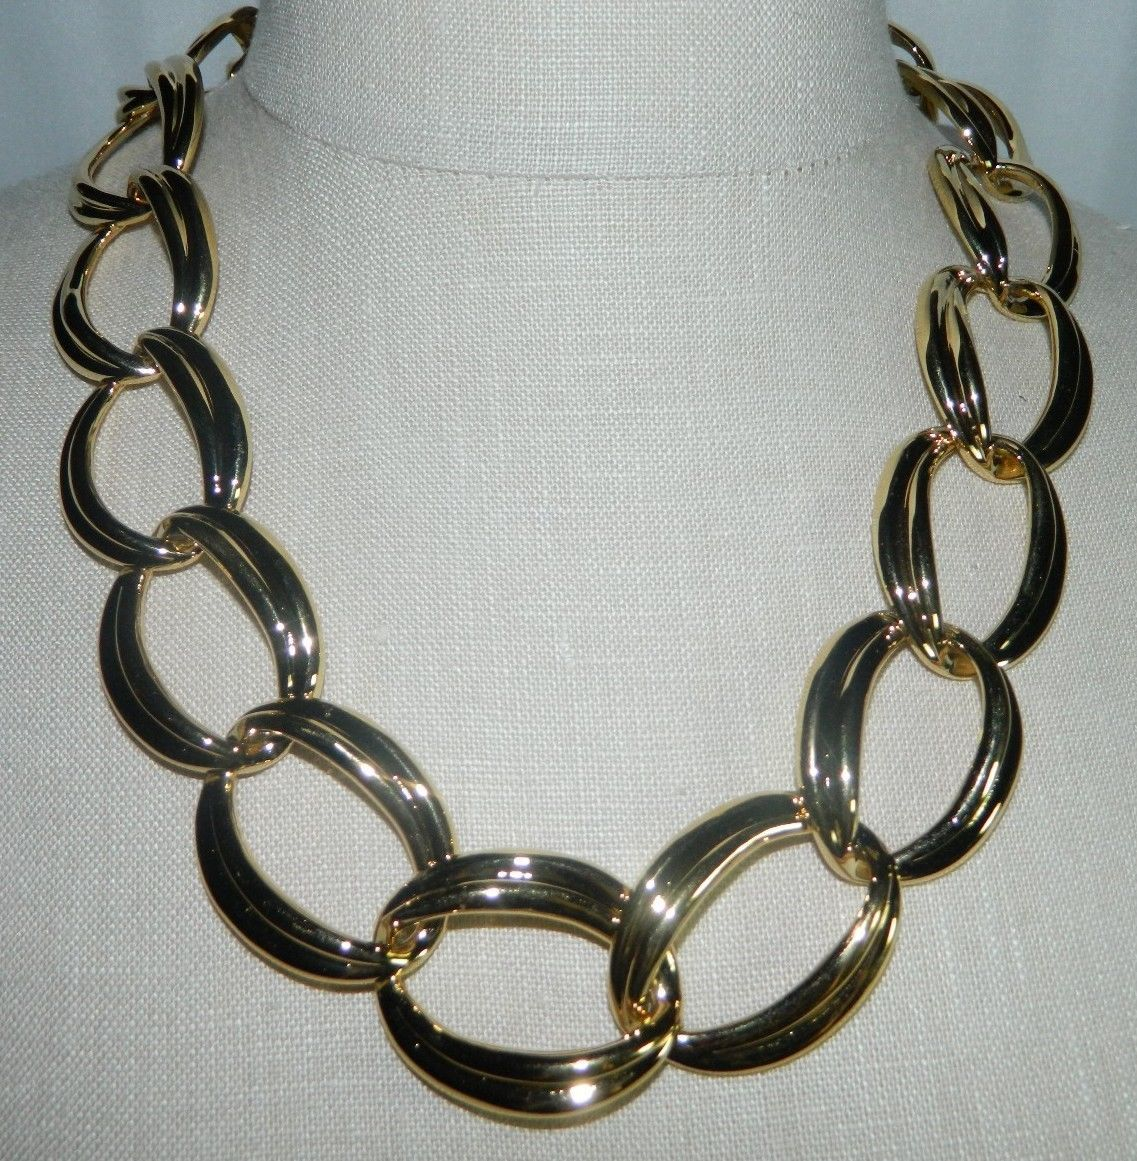 "VTG NOS NAPIER with Tags Heavy Gold Tone Chain Link Choker Necklace - 20/22"" image 1"